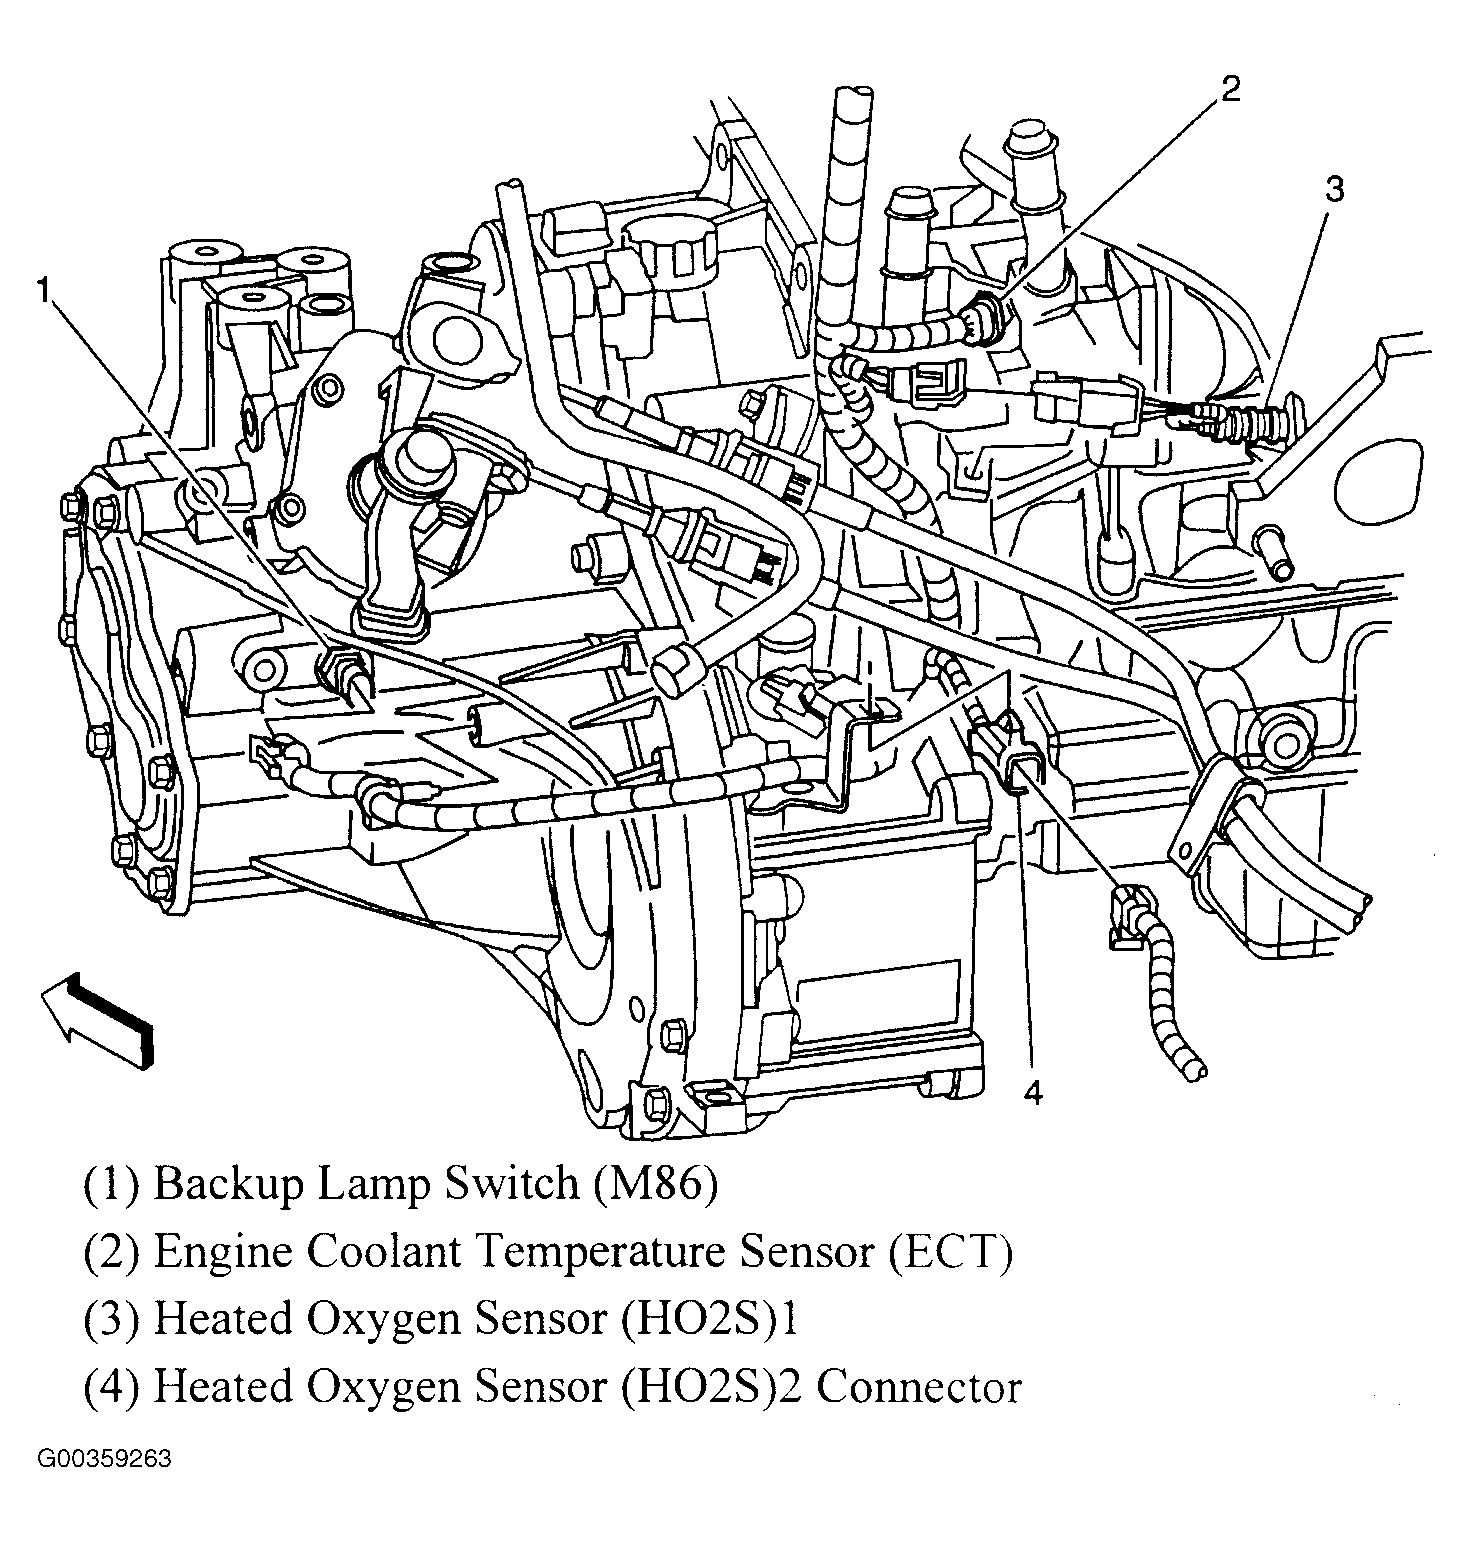 Saturn Ion Ects Hi Just Need To Know Were The Engine